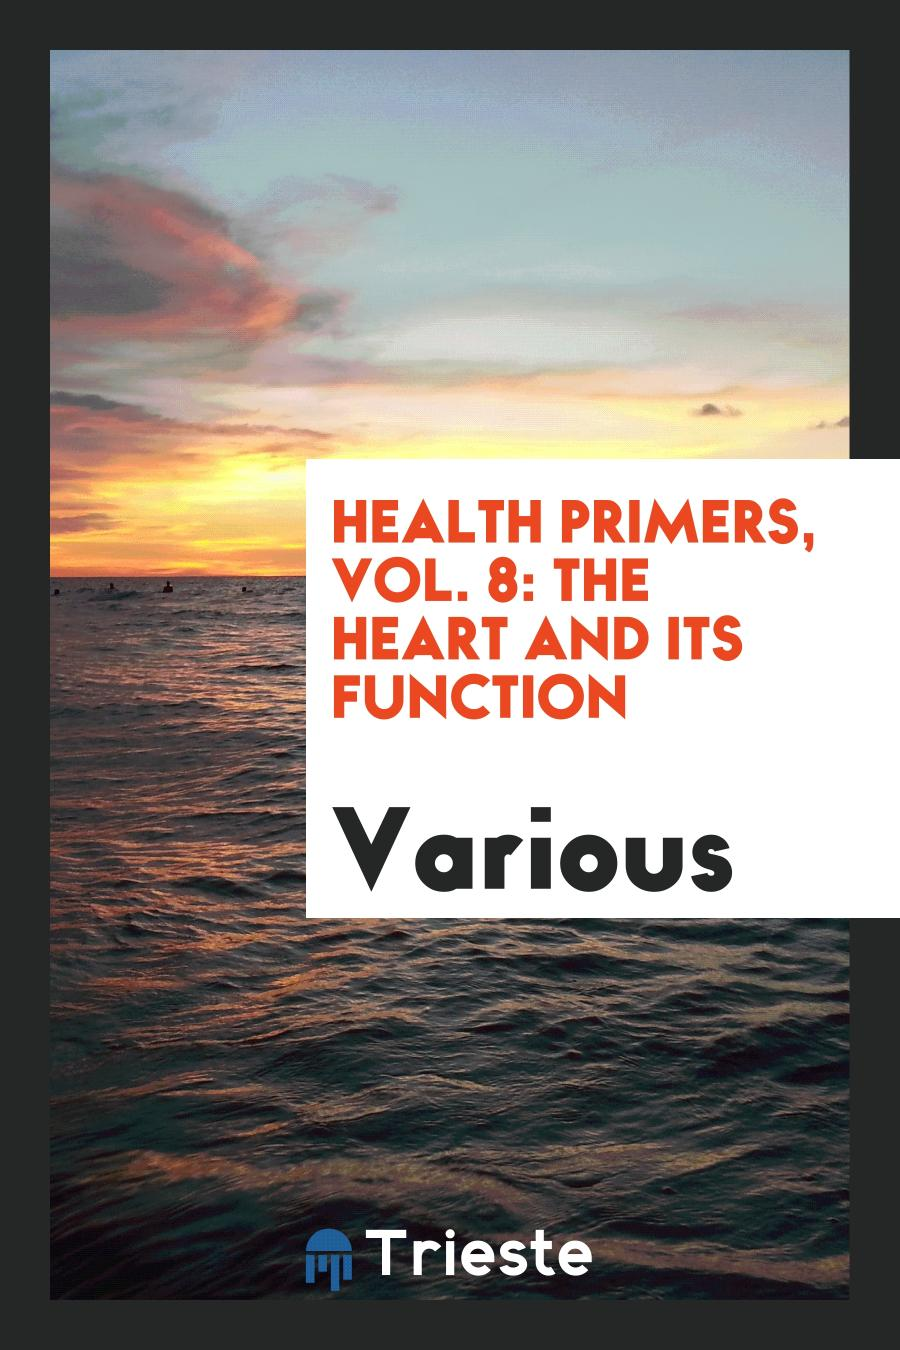 Health Primers, Vol. 8: The Heart and Its Function